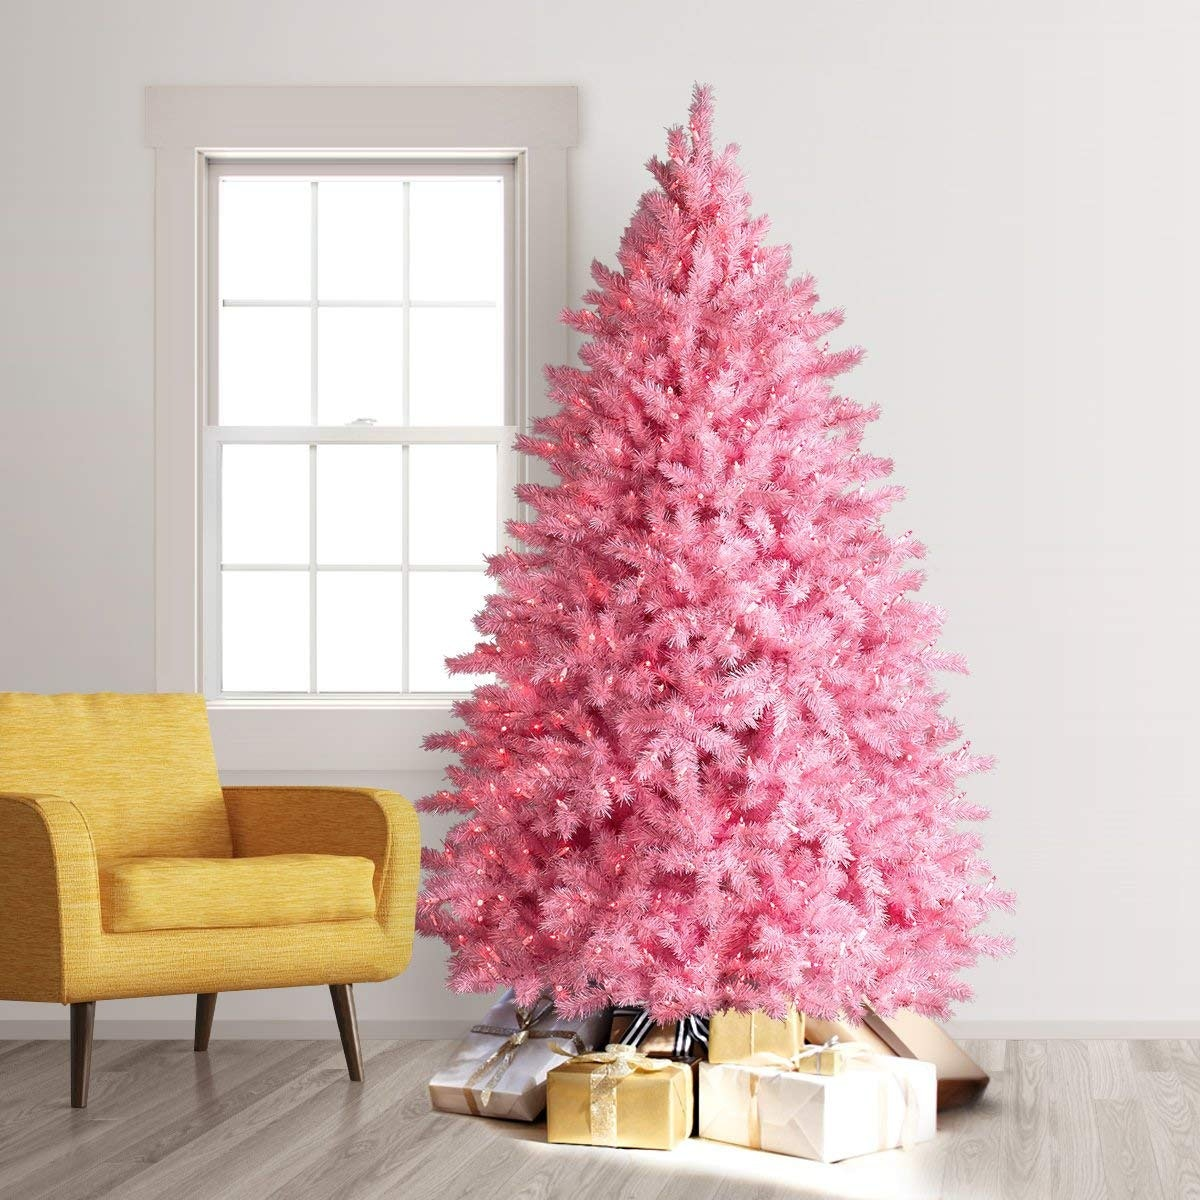 Treetopia Pretty in Pink Artificial Christmas Tree, Pink Lights